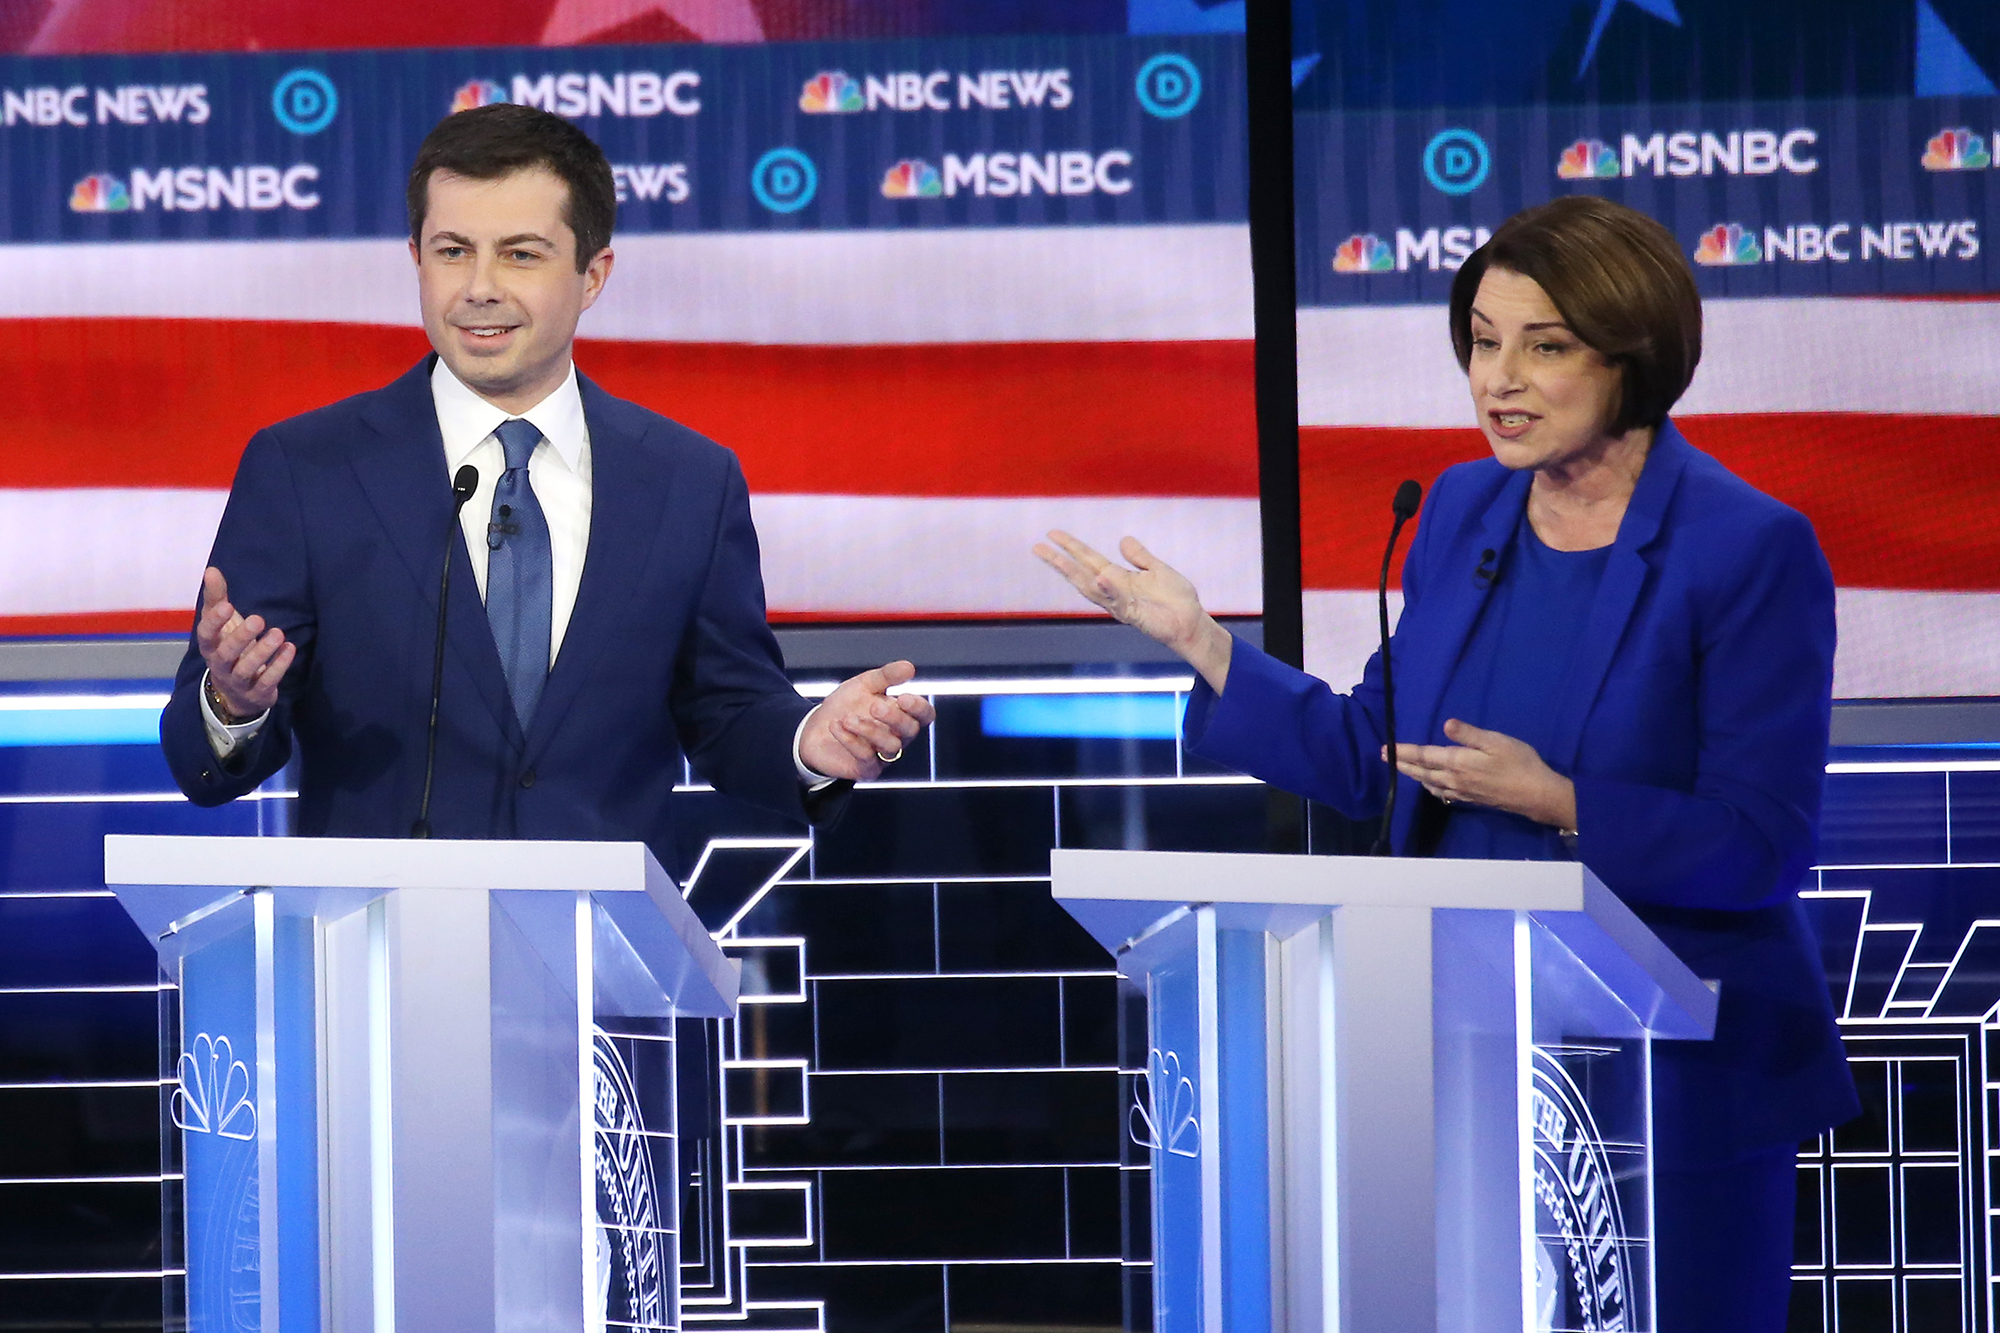 What drives Amy Klobuchar's disdain for Pete Buttigieg